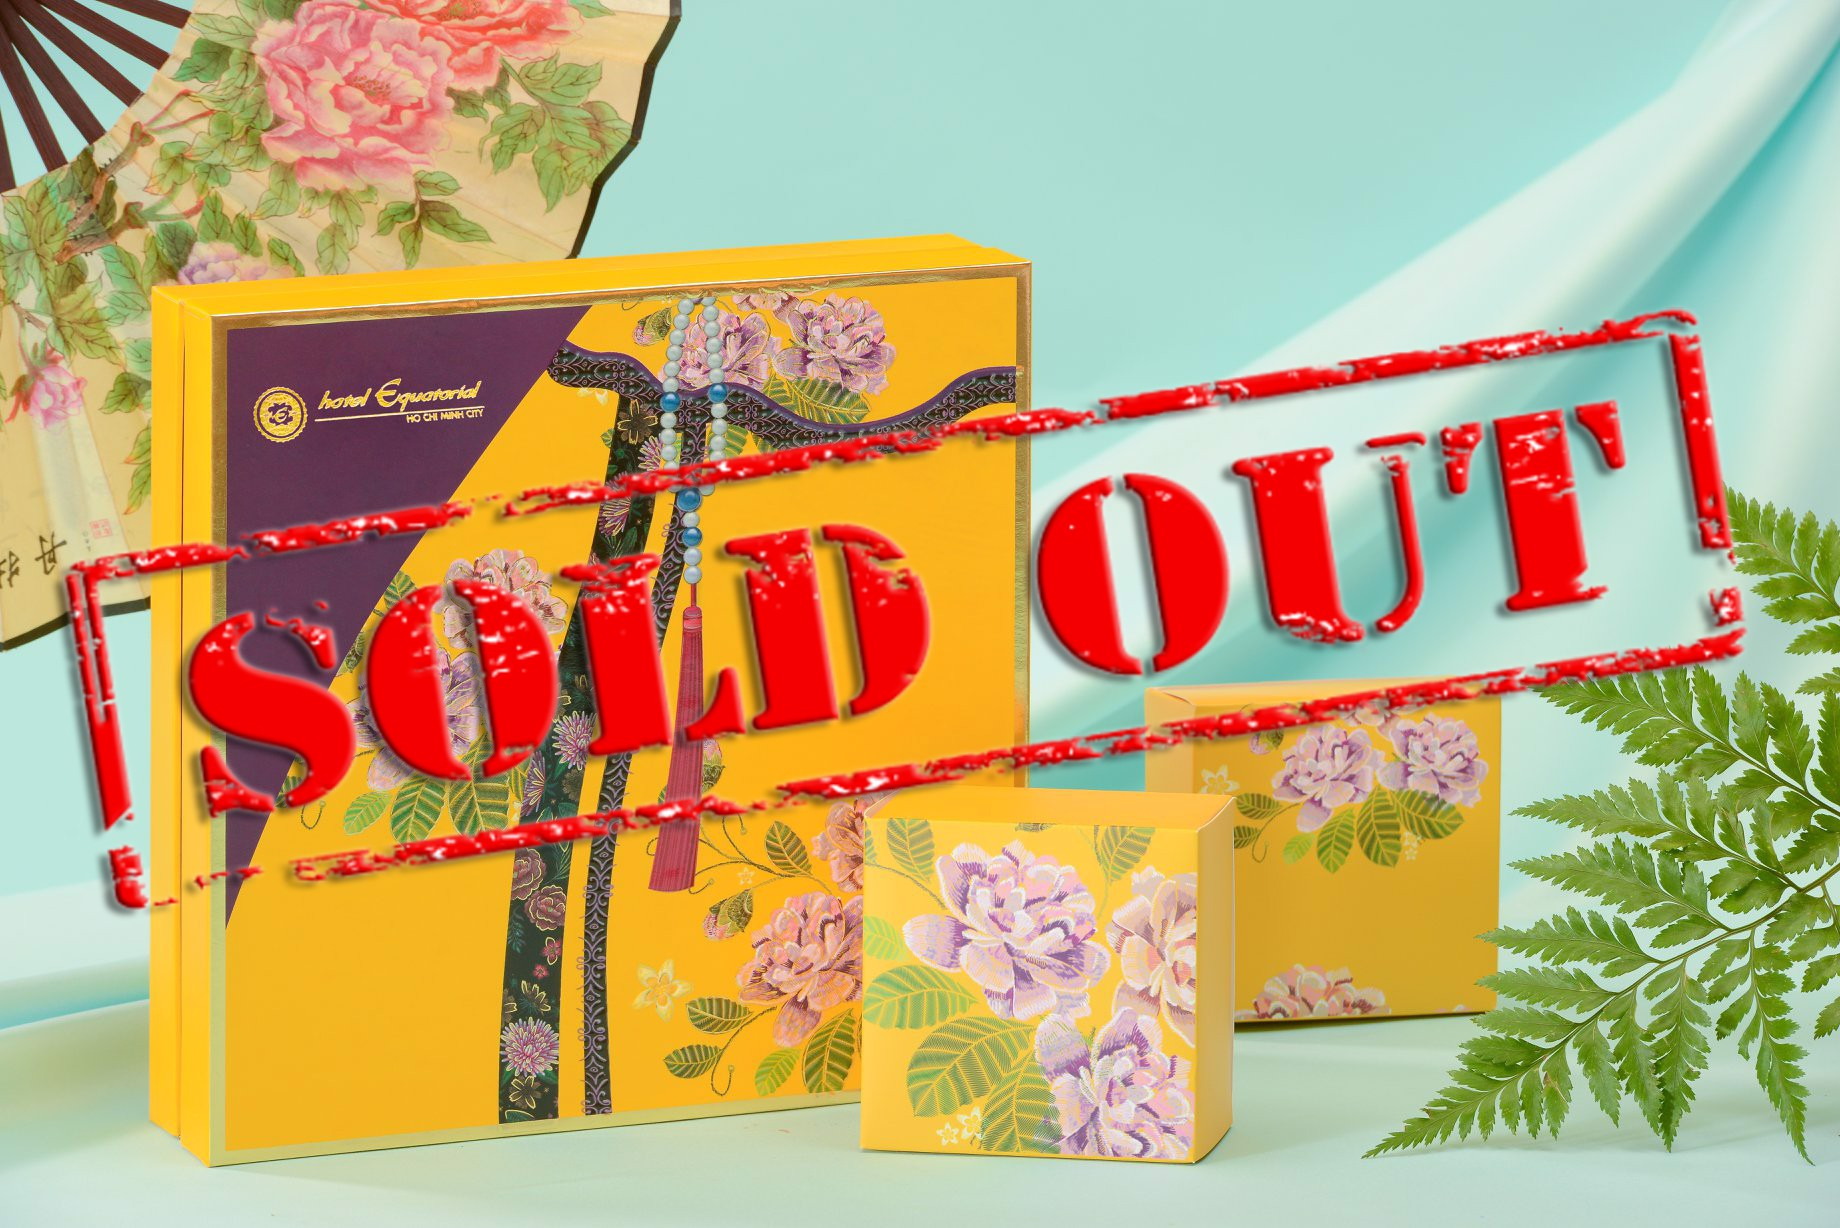 Golden Treasure - SOLD OUT